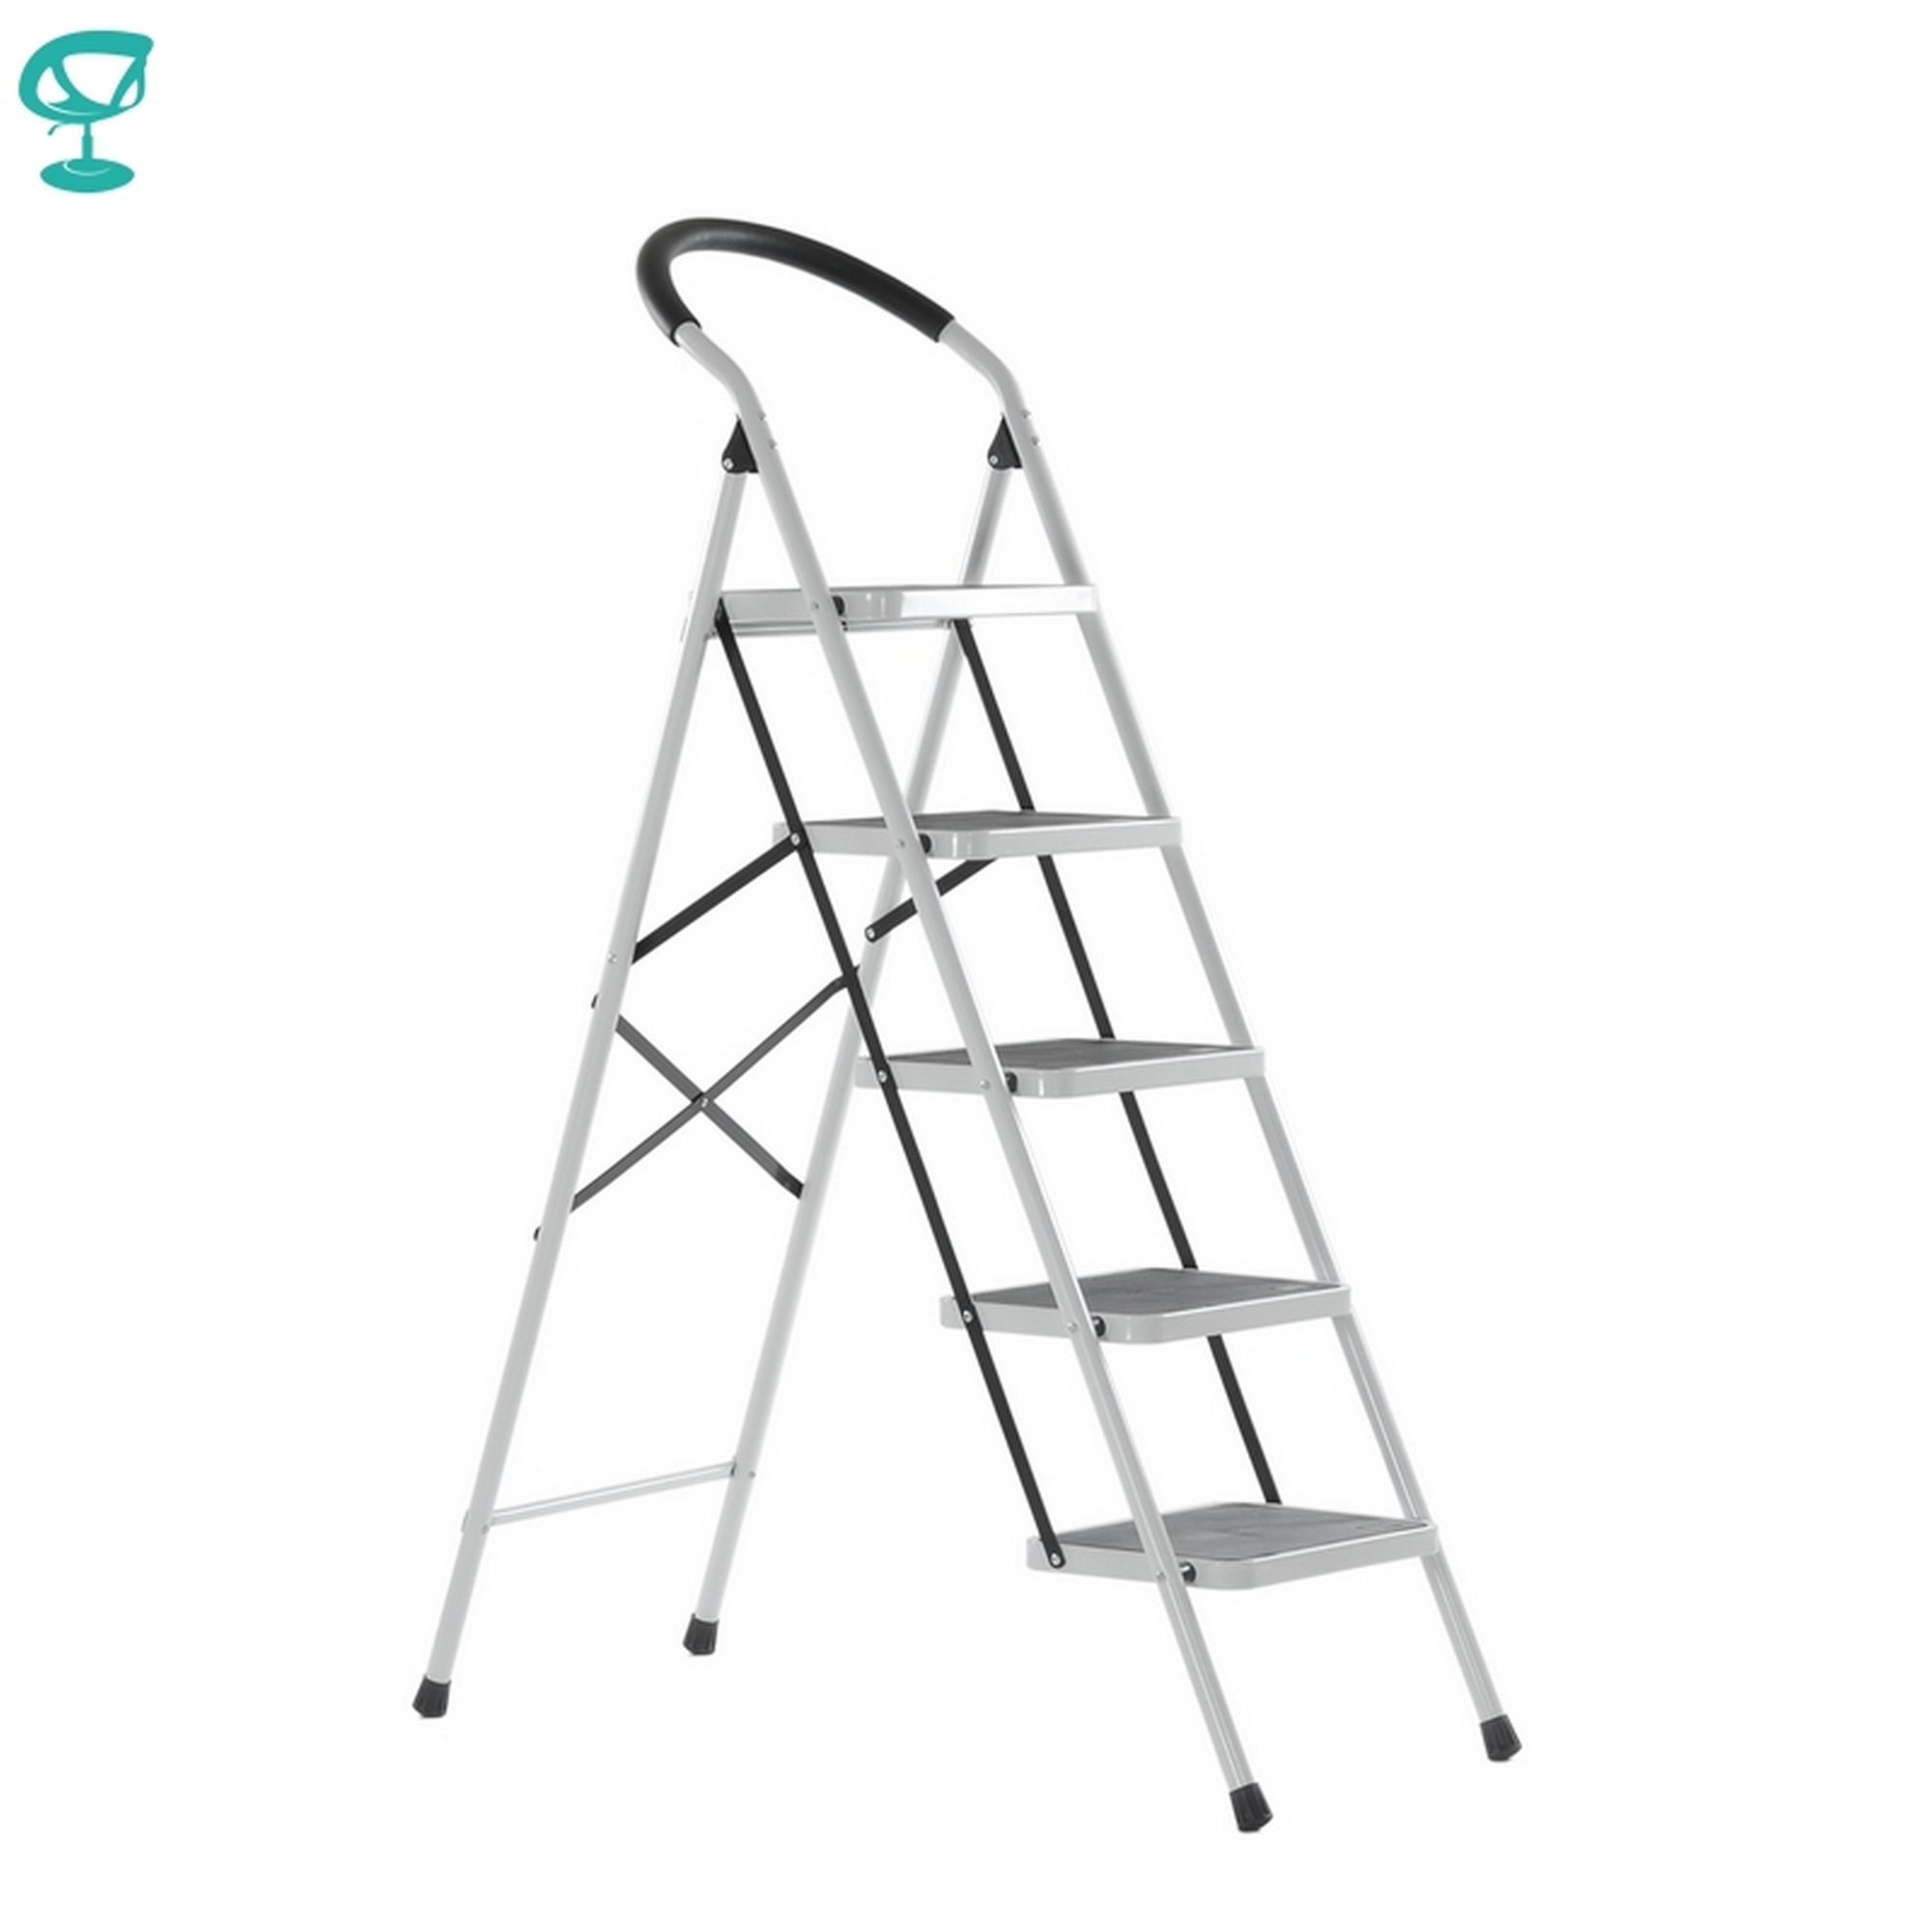 95668 Barneo St-35 Ladder Steel 5 Stages White Single Side Max Load 150 Kg Free Shipping To Russia